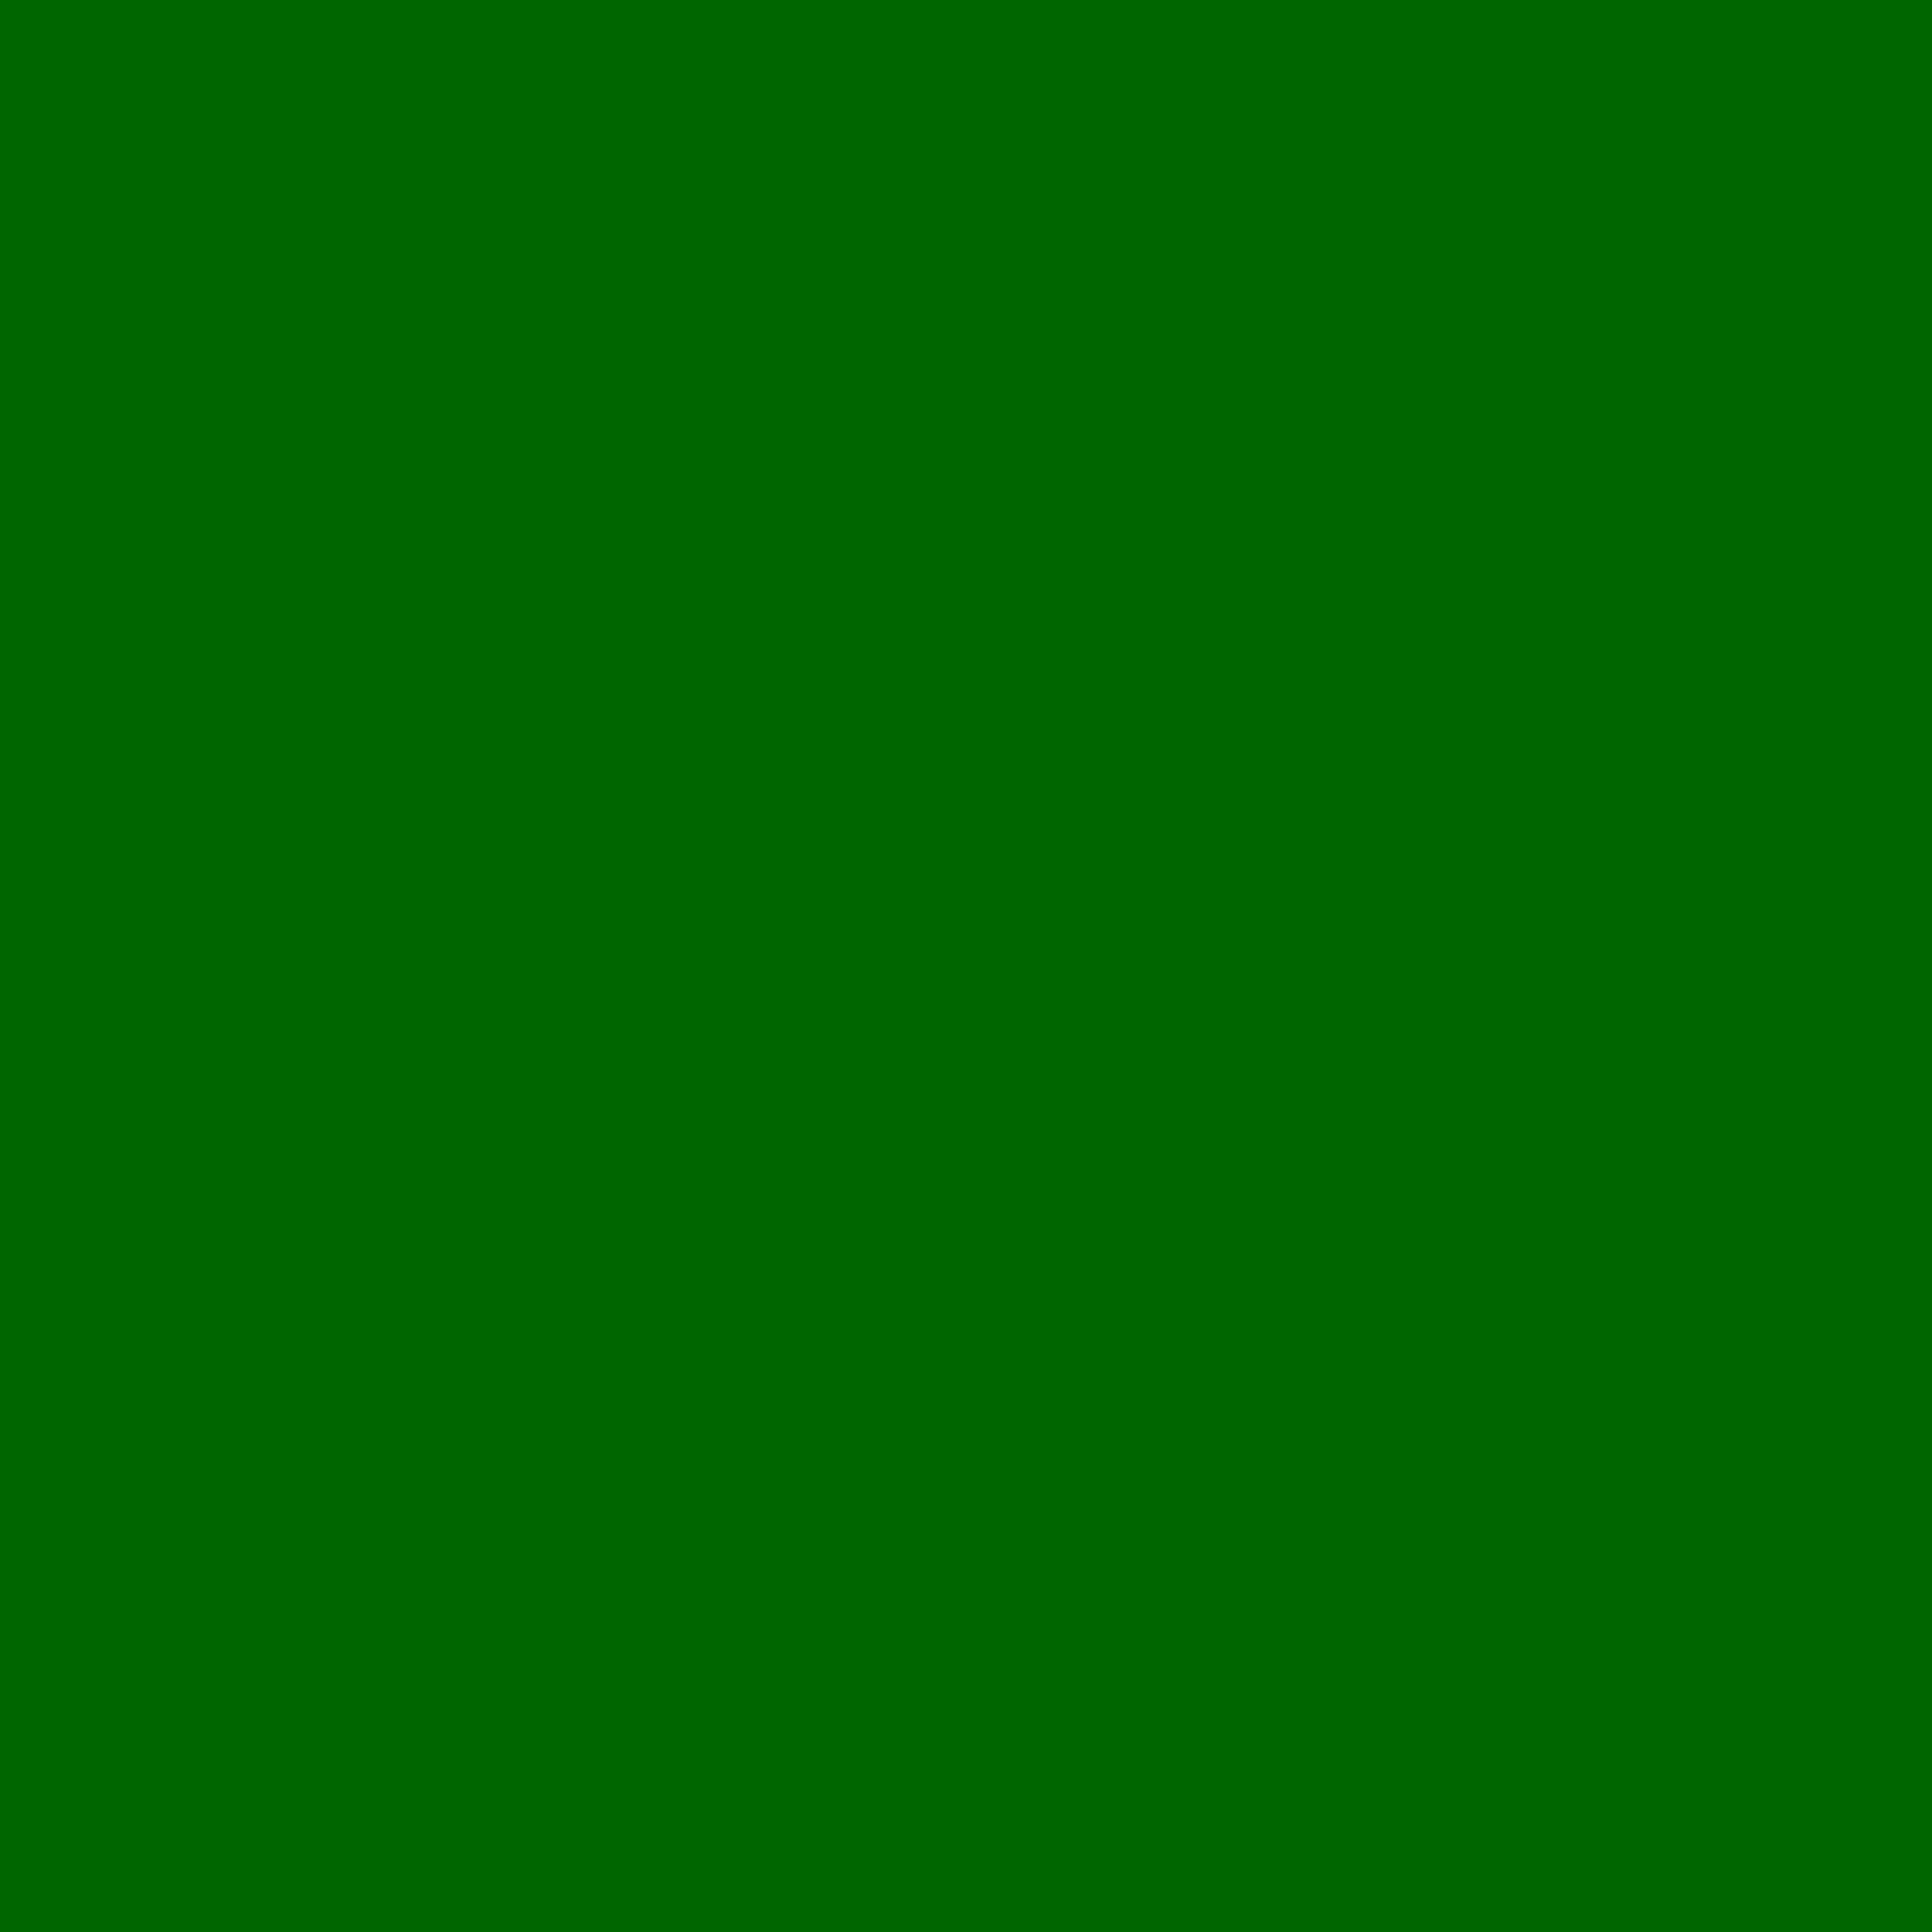 2732x2732 Pakistan Green Solid Color Background